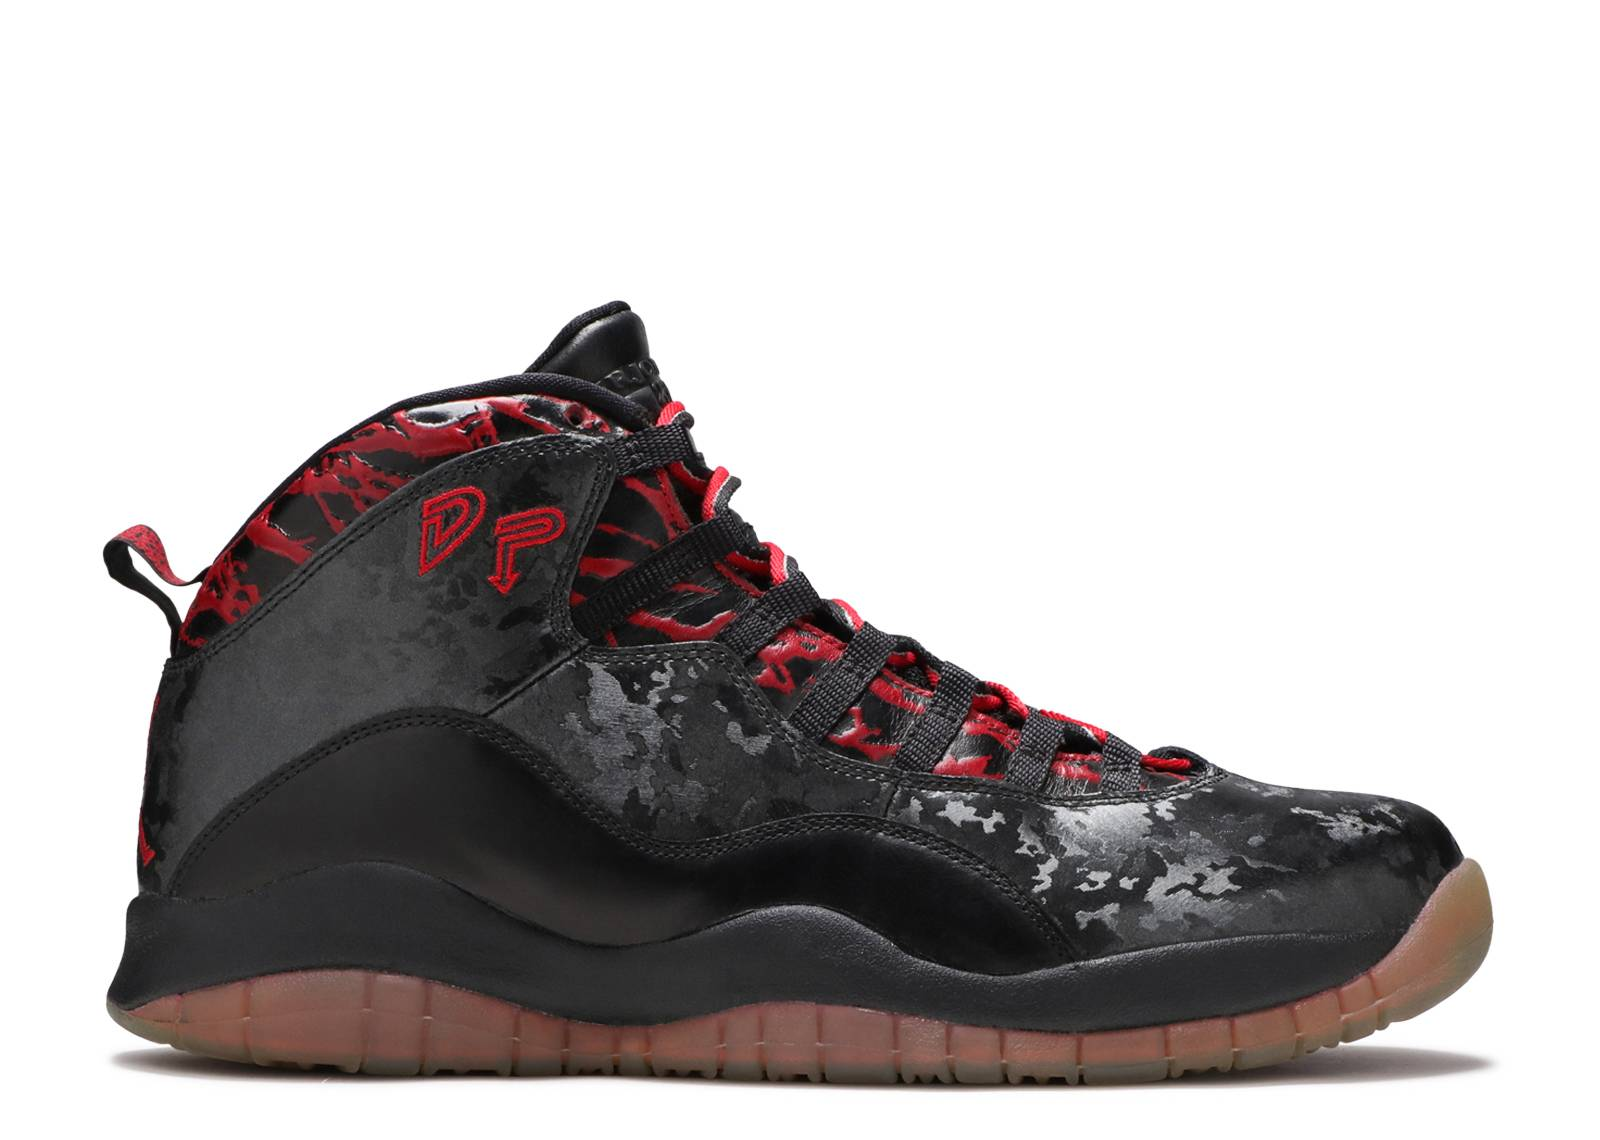 dbfce12d8788 Air Jordan 10 Retro Db